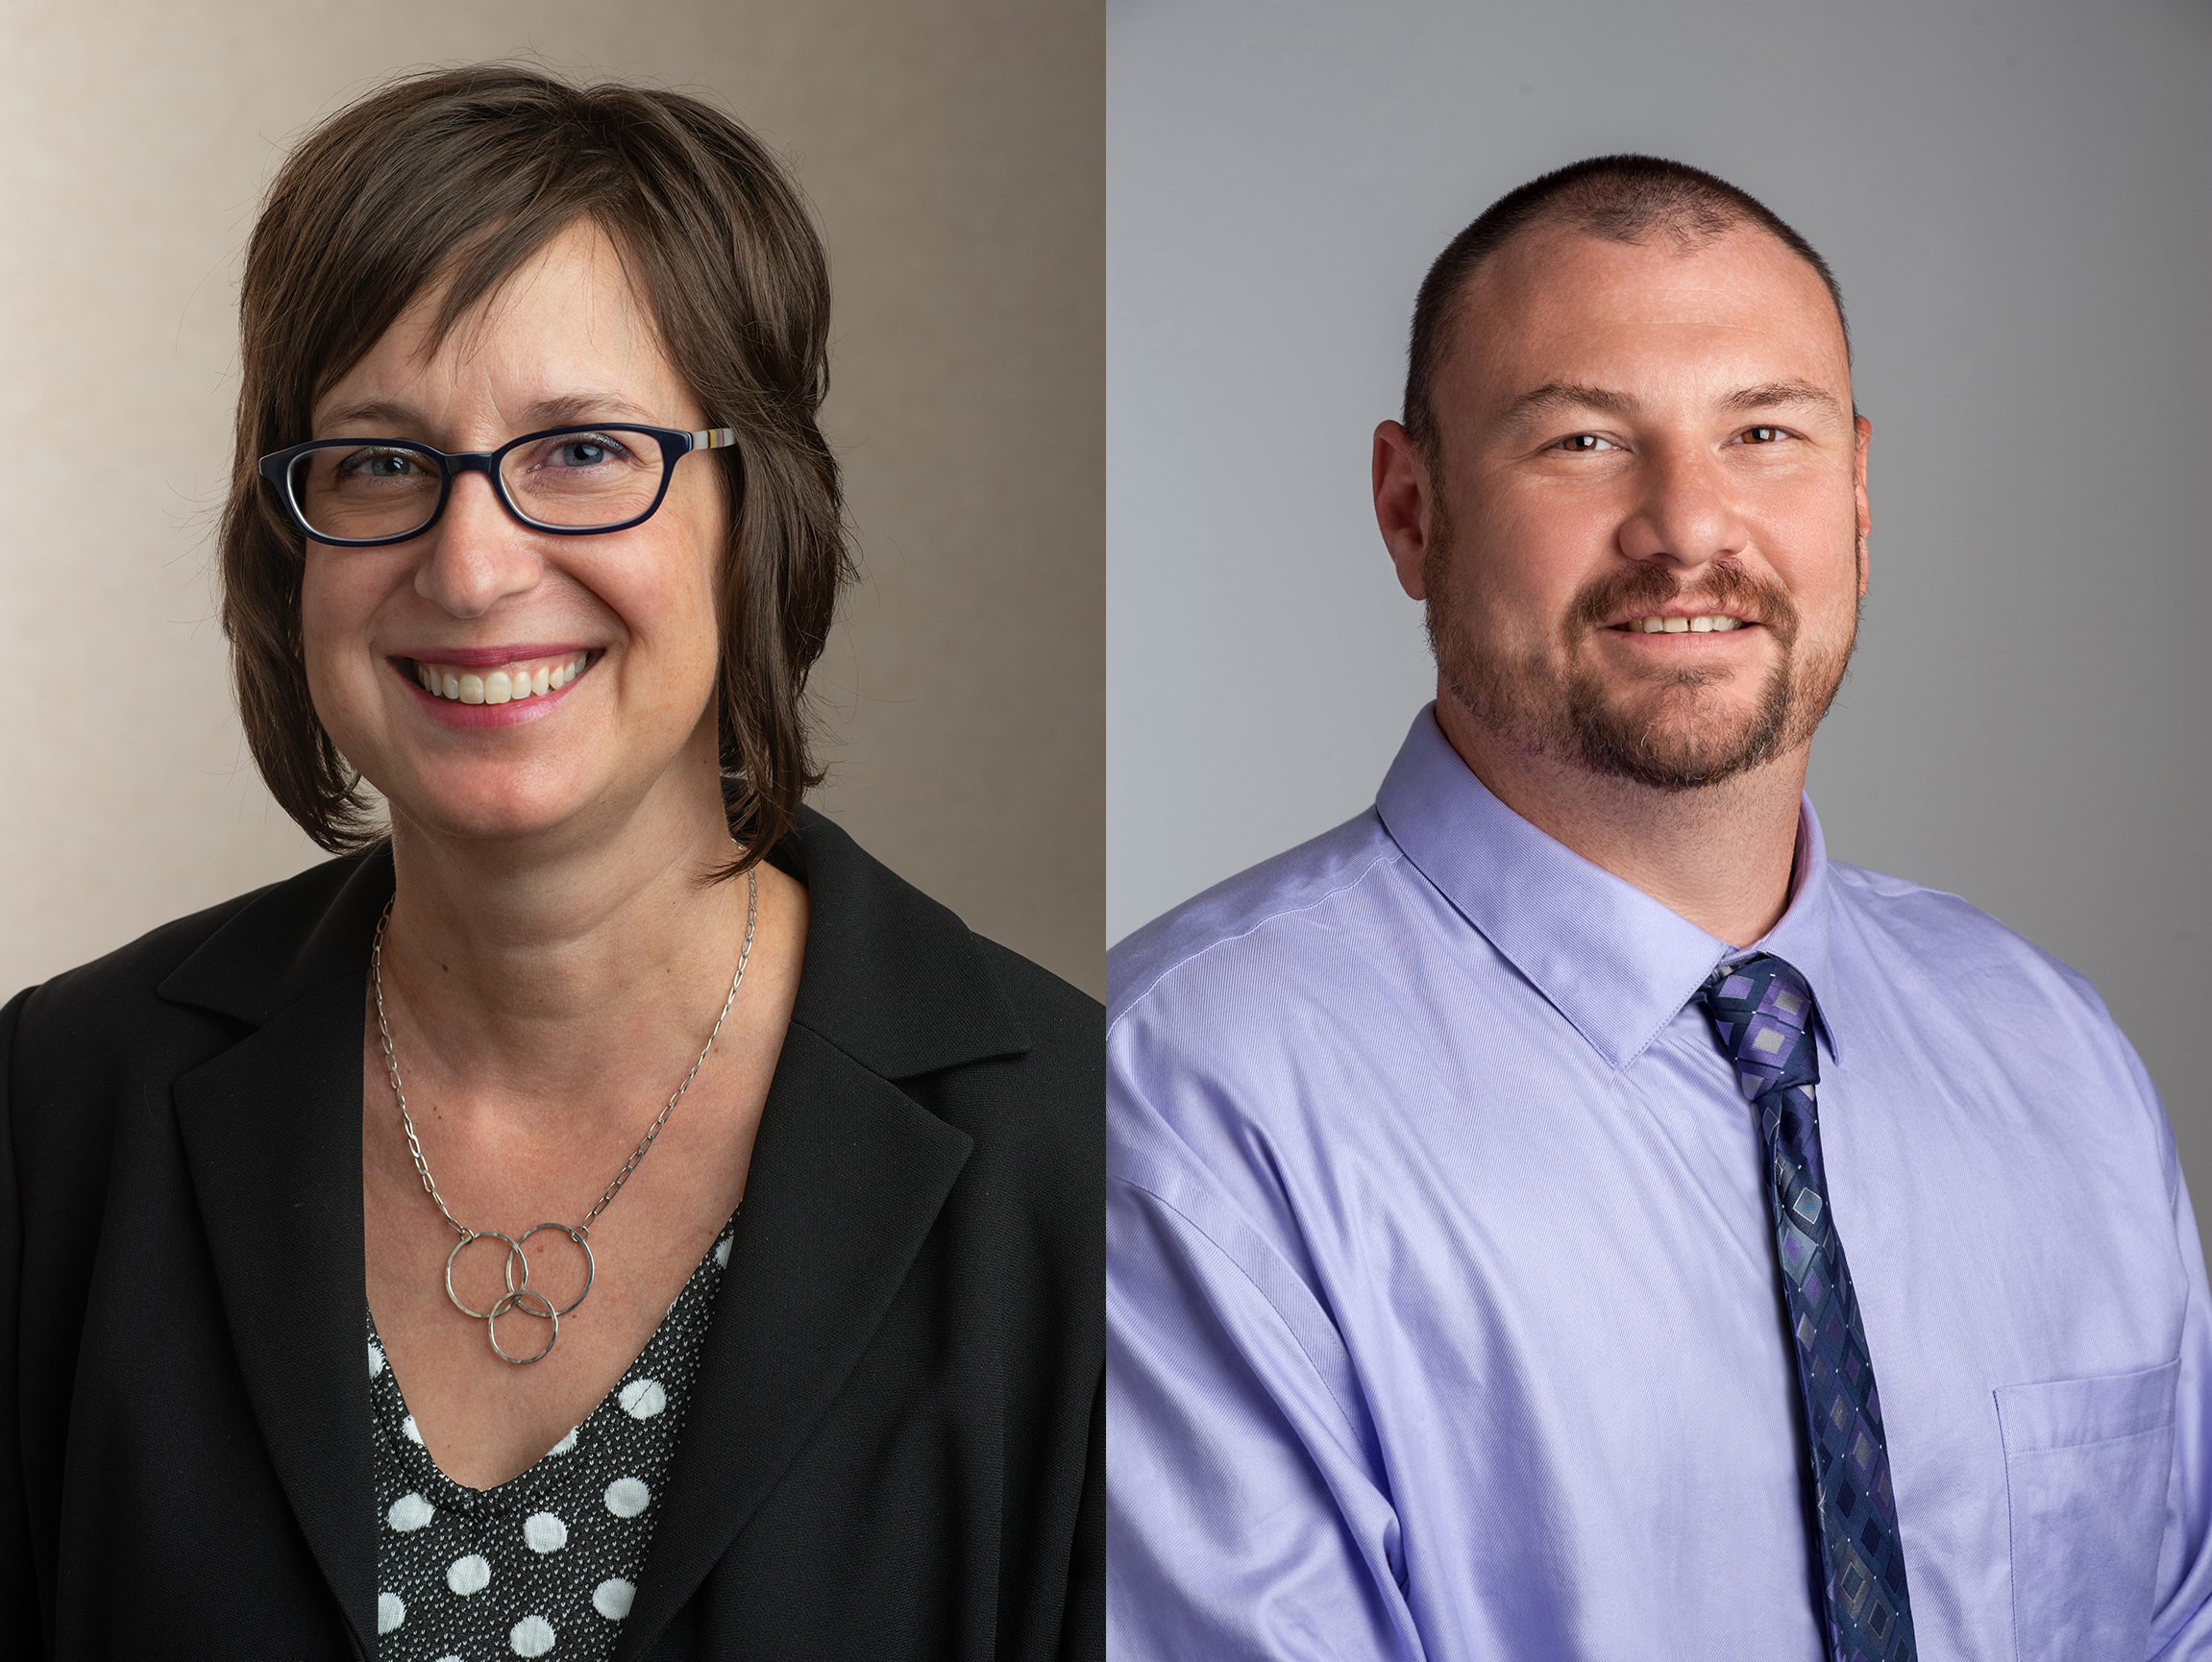 Karen Horneffer-Ginter, PhD, and Christopher Keator, PhD